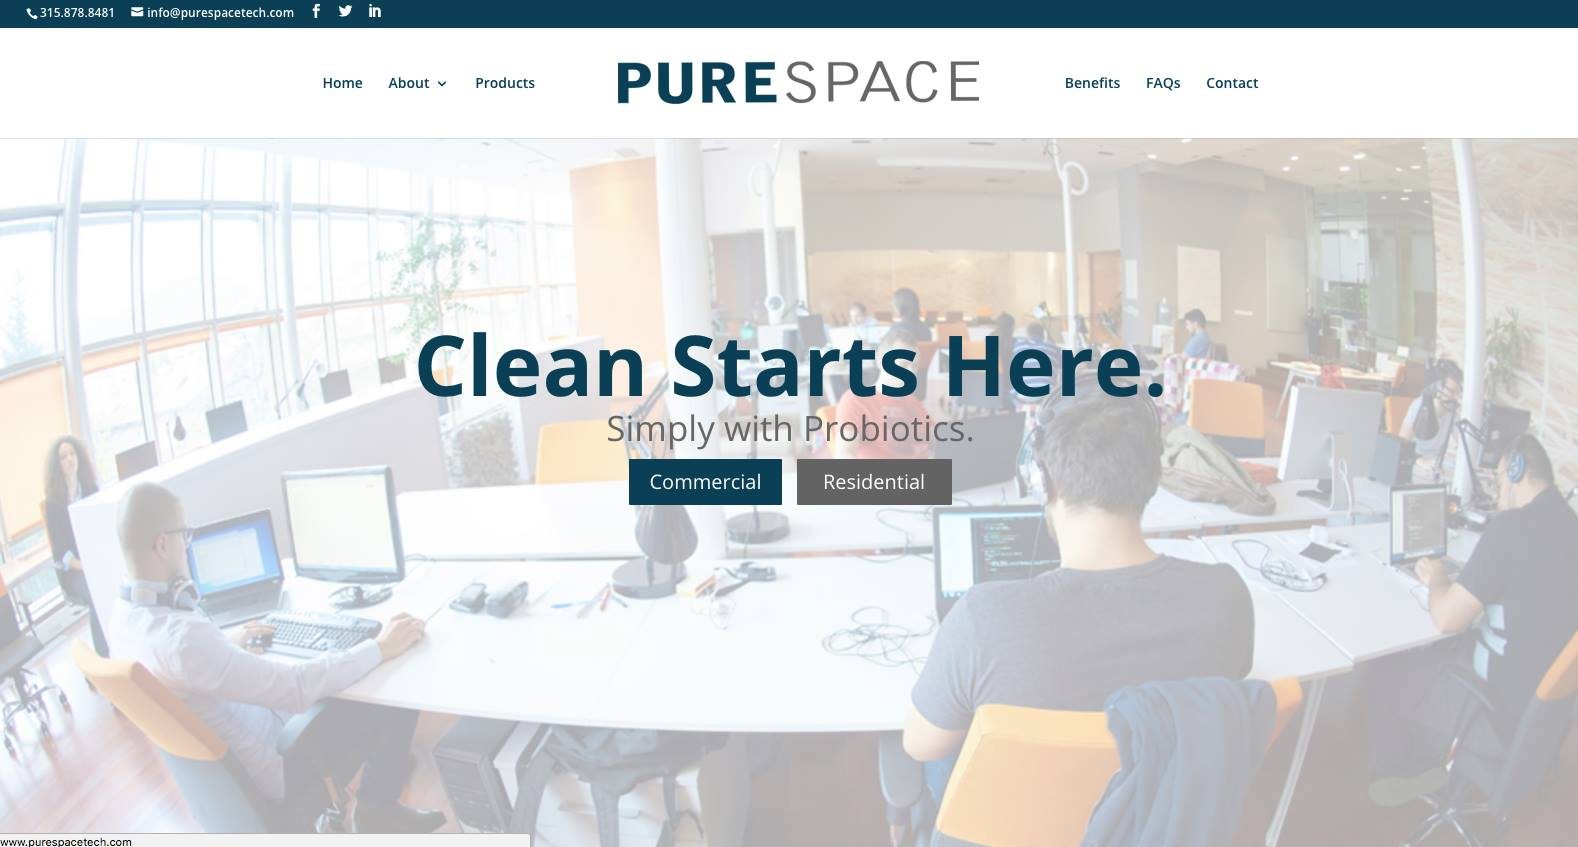 PureSpace Air Purification